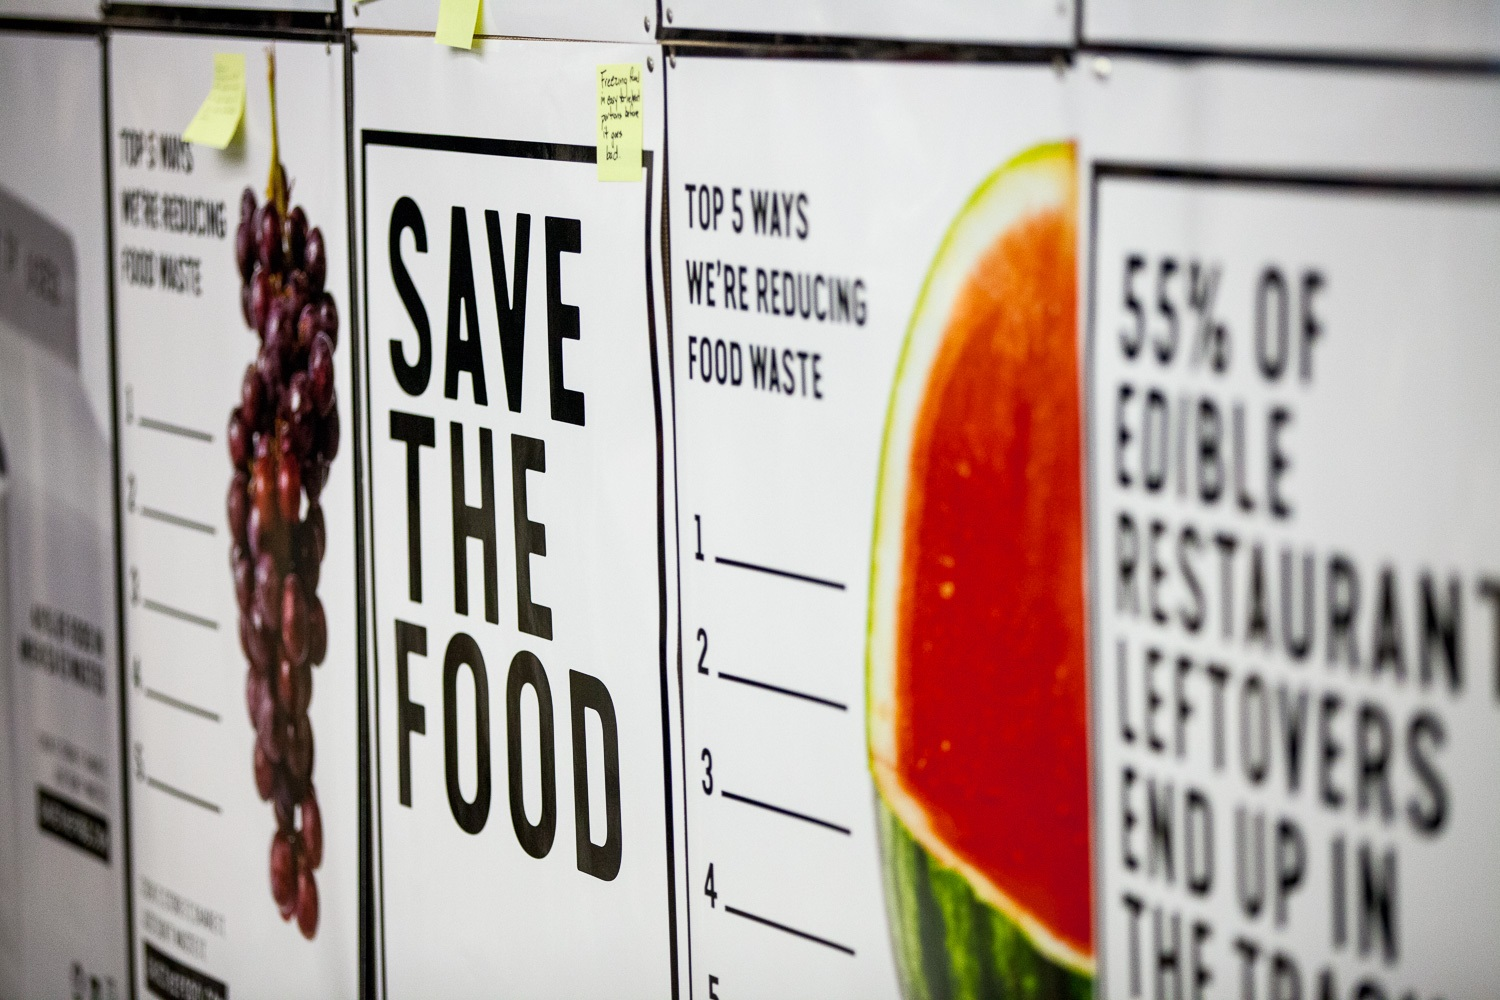 #SaveTheFood San Diego Launch Poster Wall @sdfoodsys  09-26-17